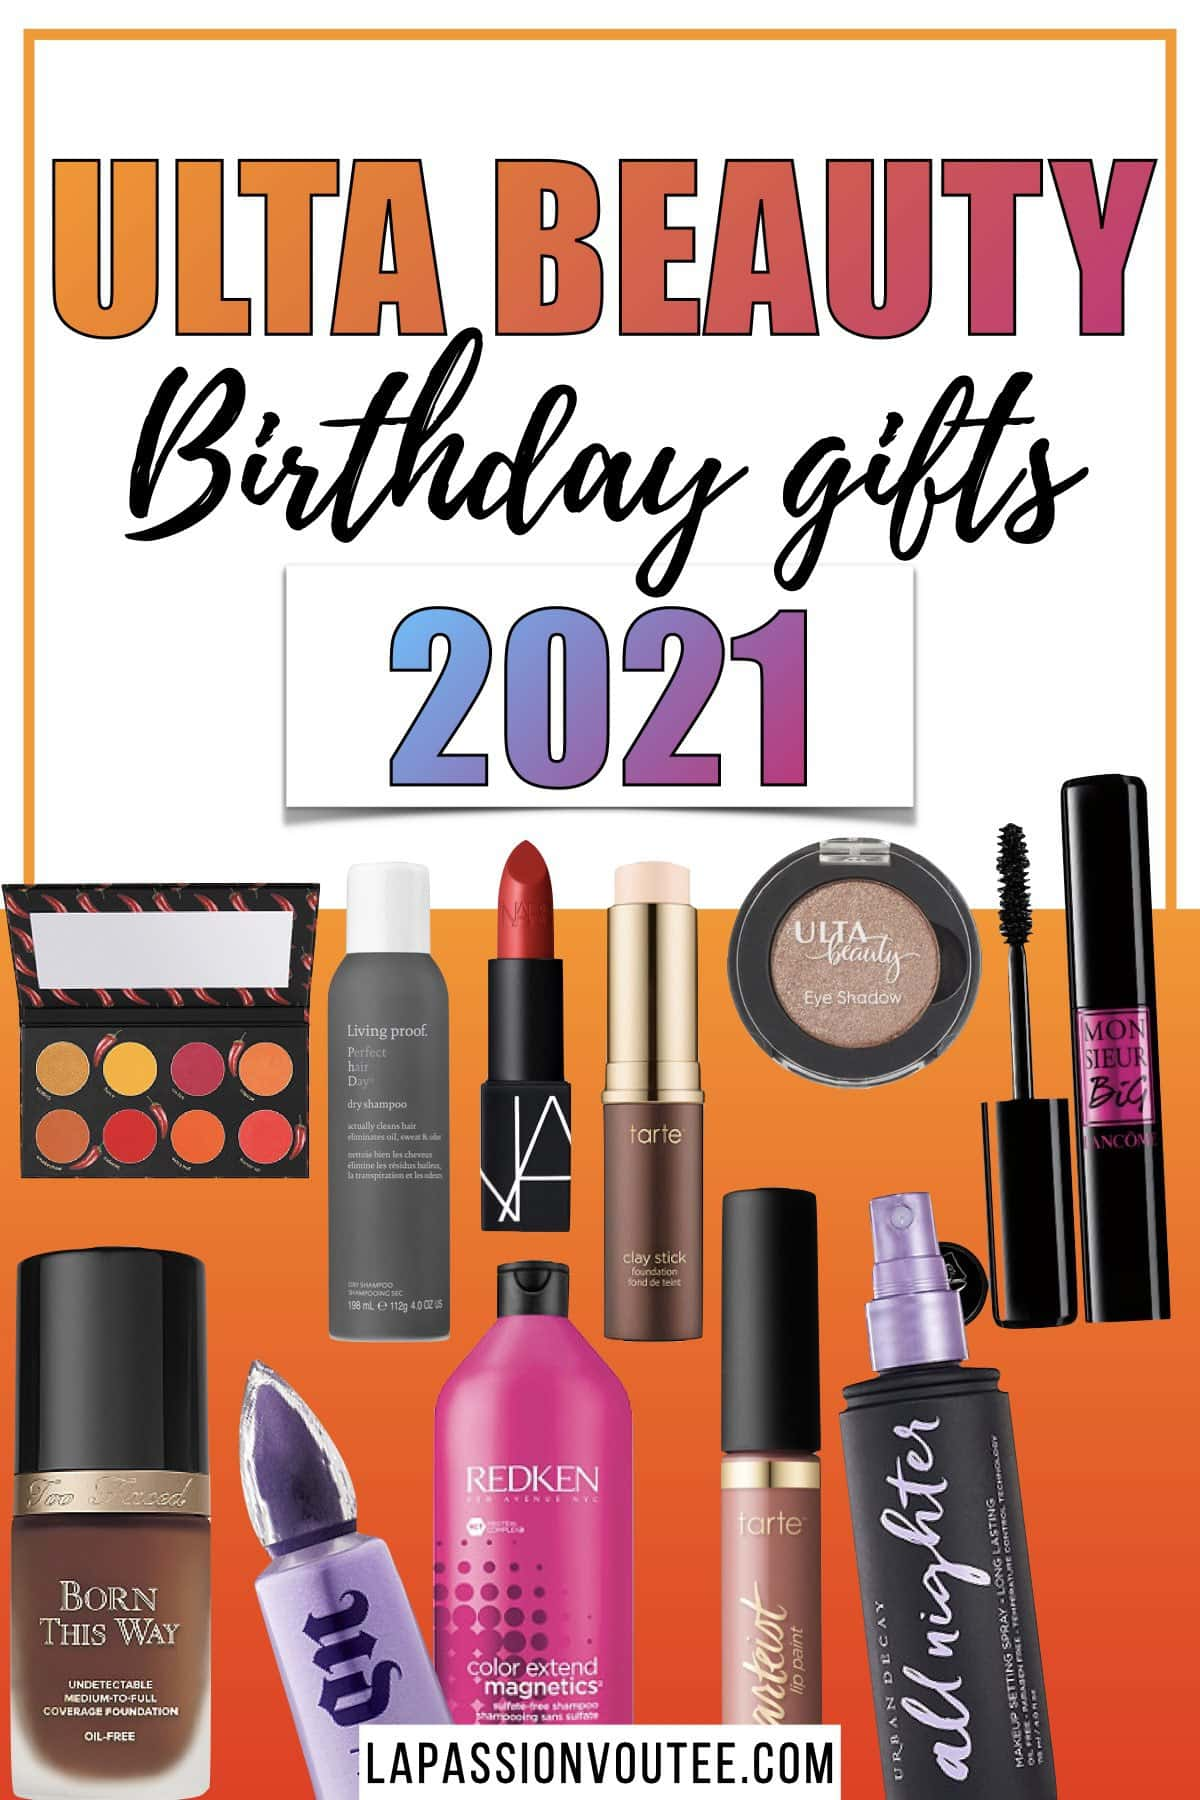 Your ultimate guide to the best Ulta birthday gift of 2021. Know the exact free birthday gifts you will get this year. ulta beauty coupon, ulta birthday gift 2021, ulta birthday gift february 2021, ulta birthday code, ulta birthday box, ulta beauty birthday gift